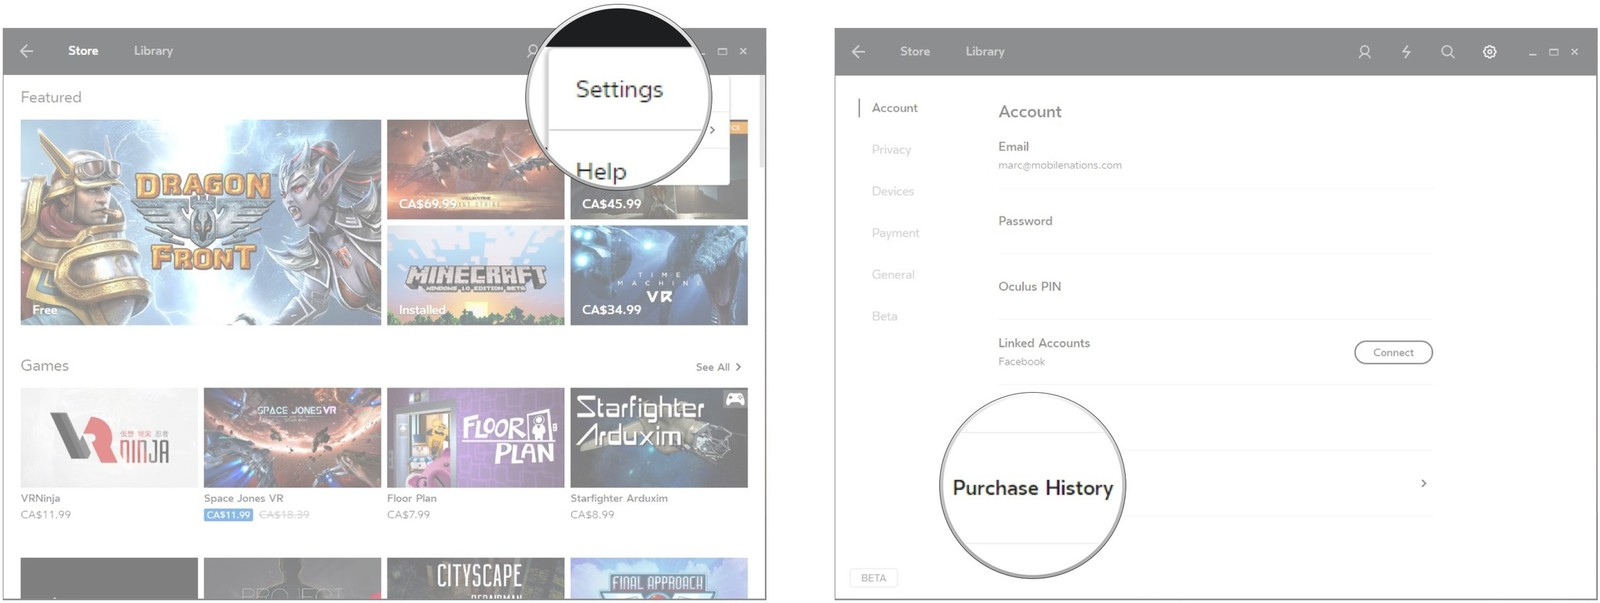 Click Settings. Click Purchase History.